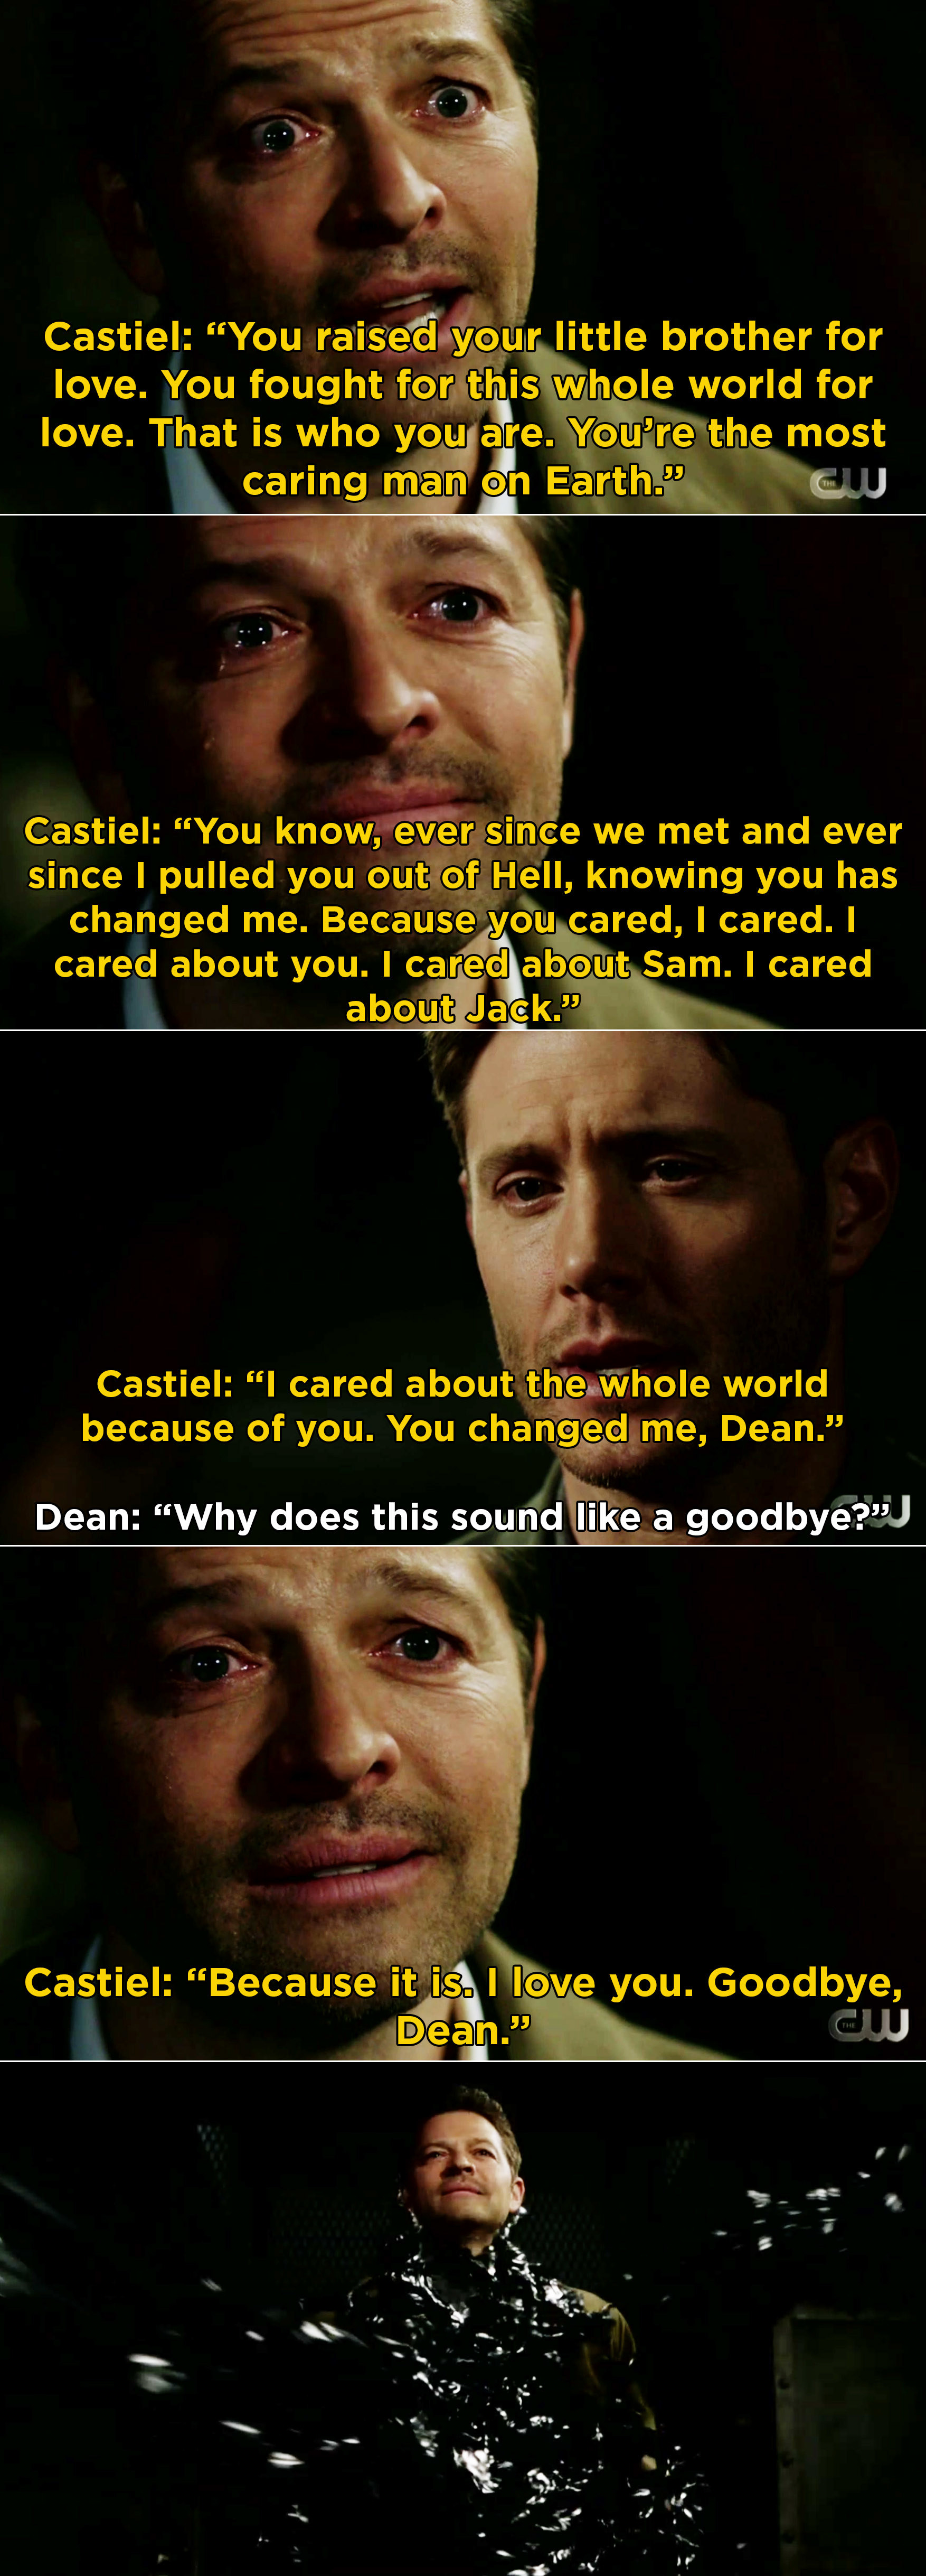 Castiel saying that Dean made him care about the whole world and that he loves him